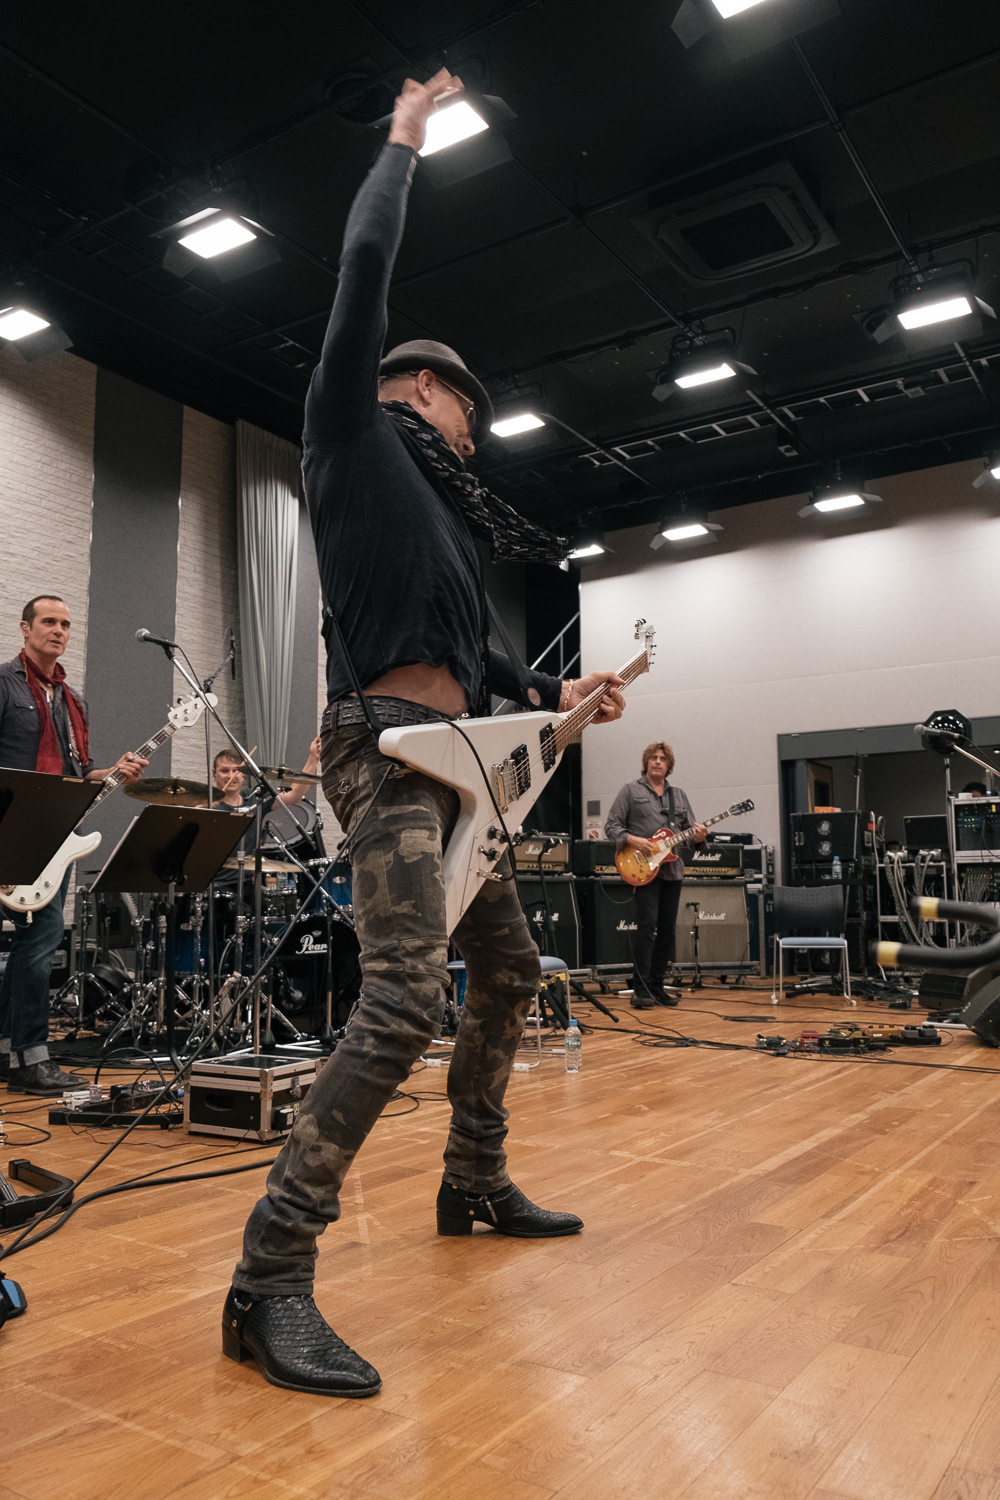 Rudolf Schenker, 'windmilling' over 30 times!Rehearsals for the Japan Classic Rock Awards